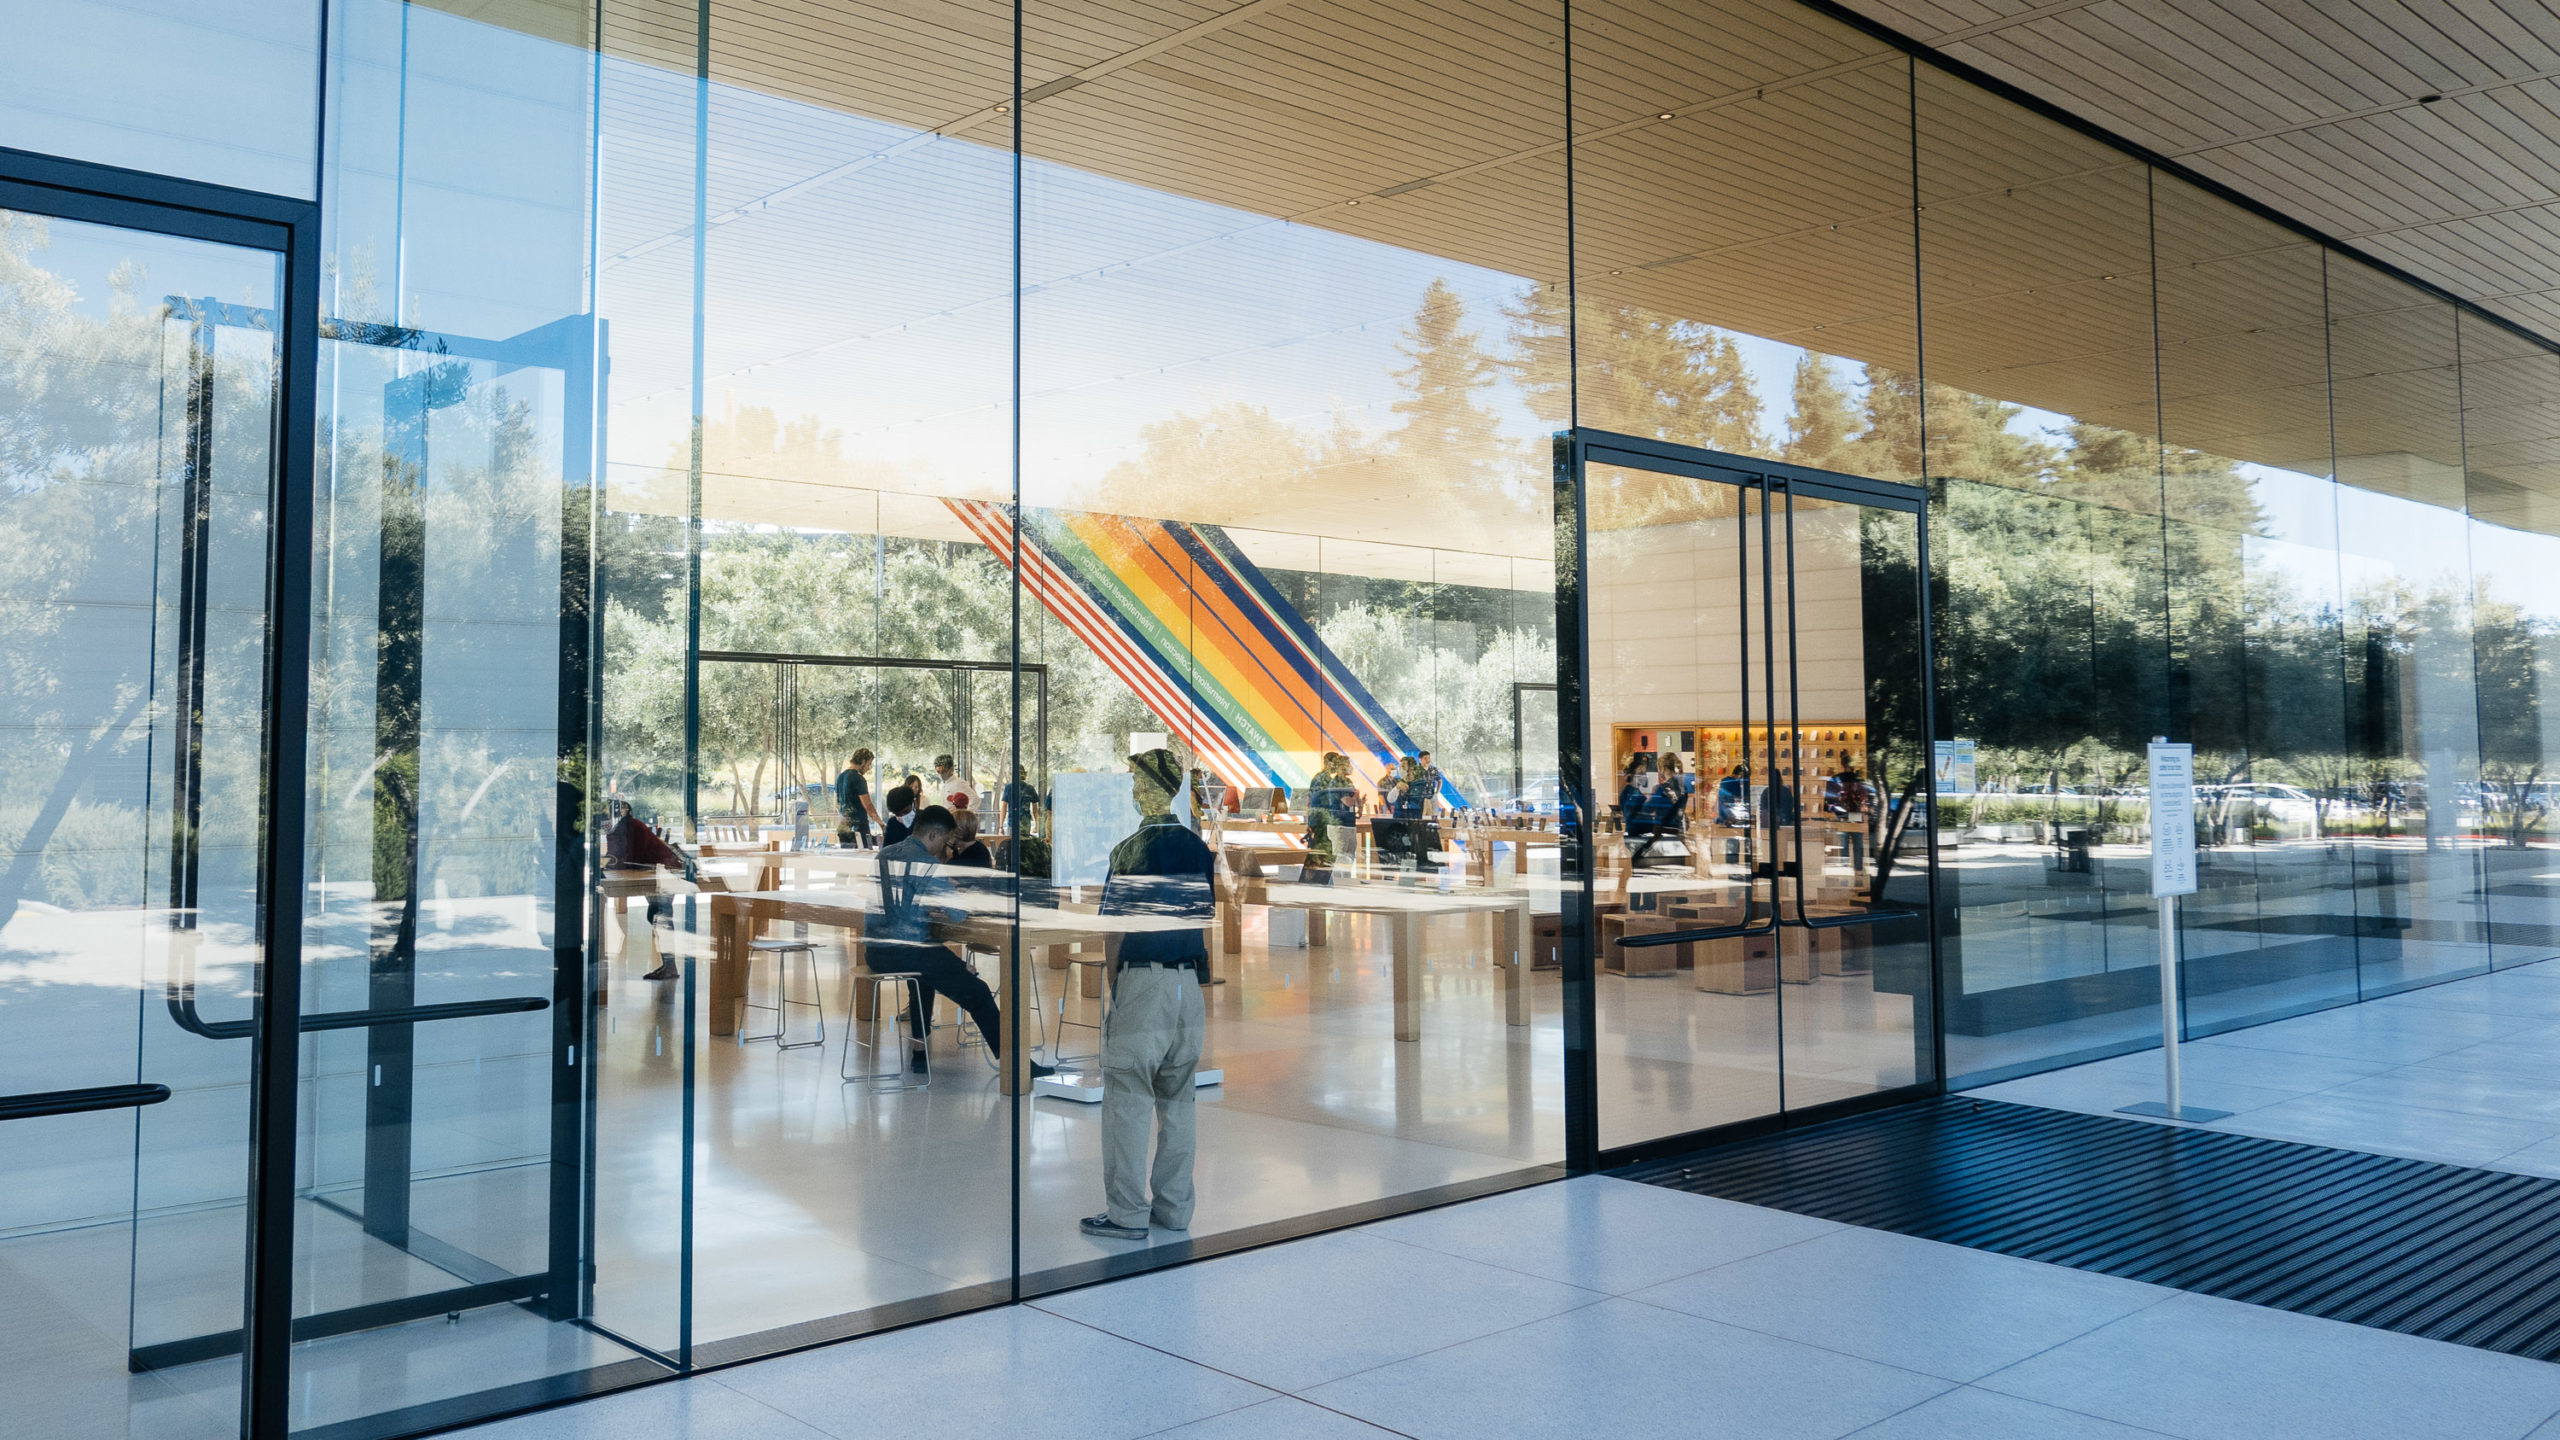 Viewing through large panes of glass, the interior of an Apple Store is revealed